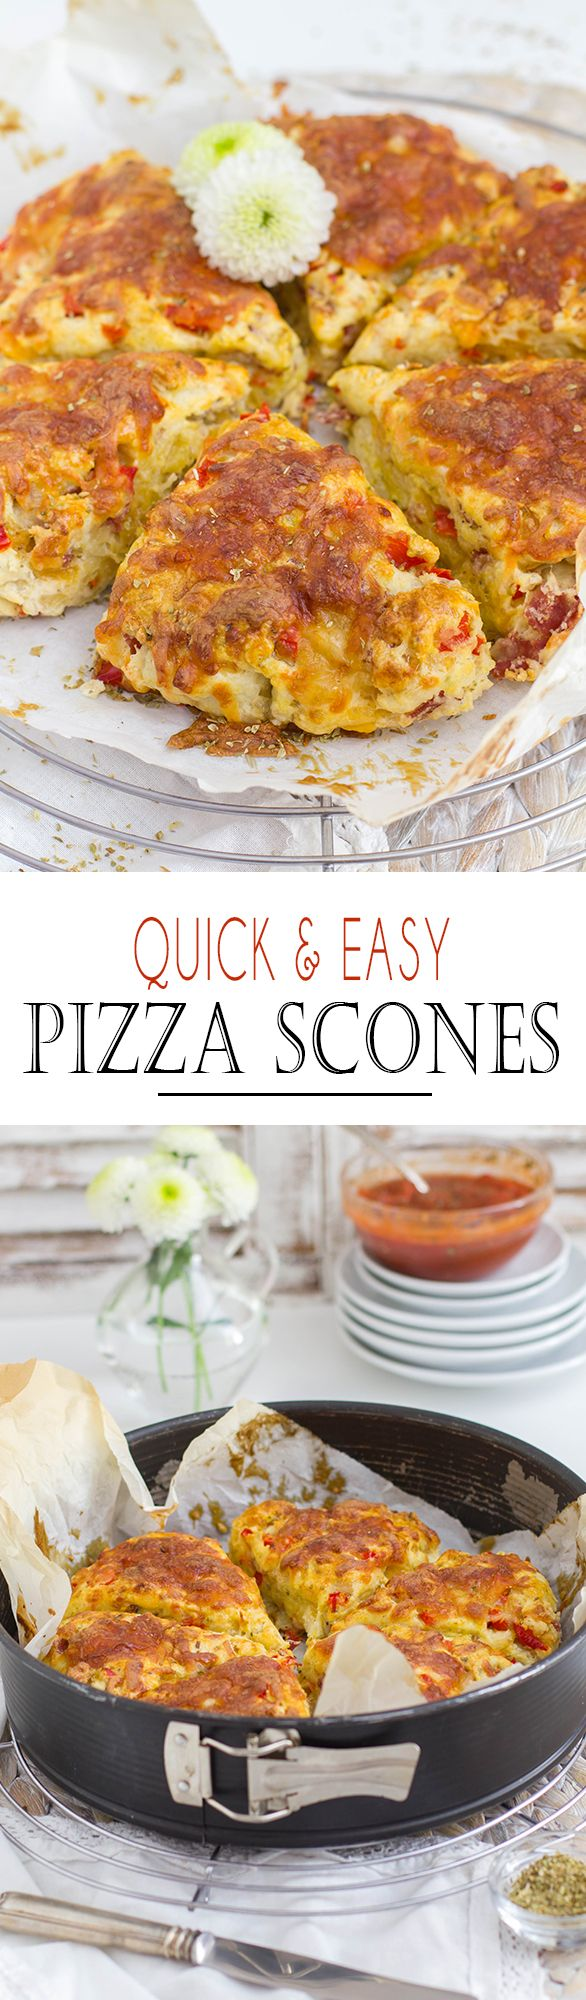 Quick and Easy Pizza Scones with fruity Marinara tomato Sauce | Schnelle und einfache Pizza Scones mit frichtiger Tomatensauce